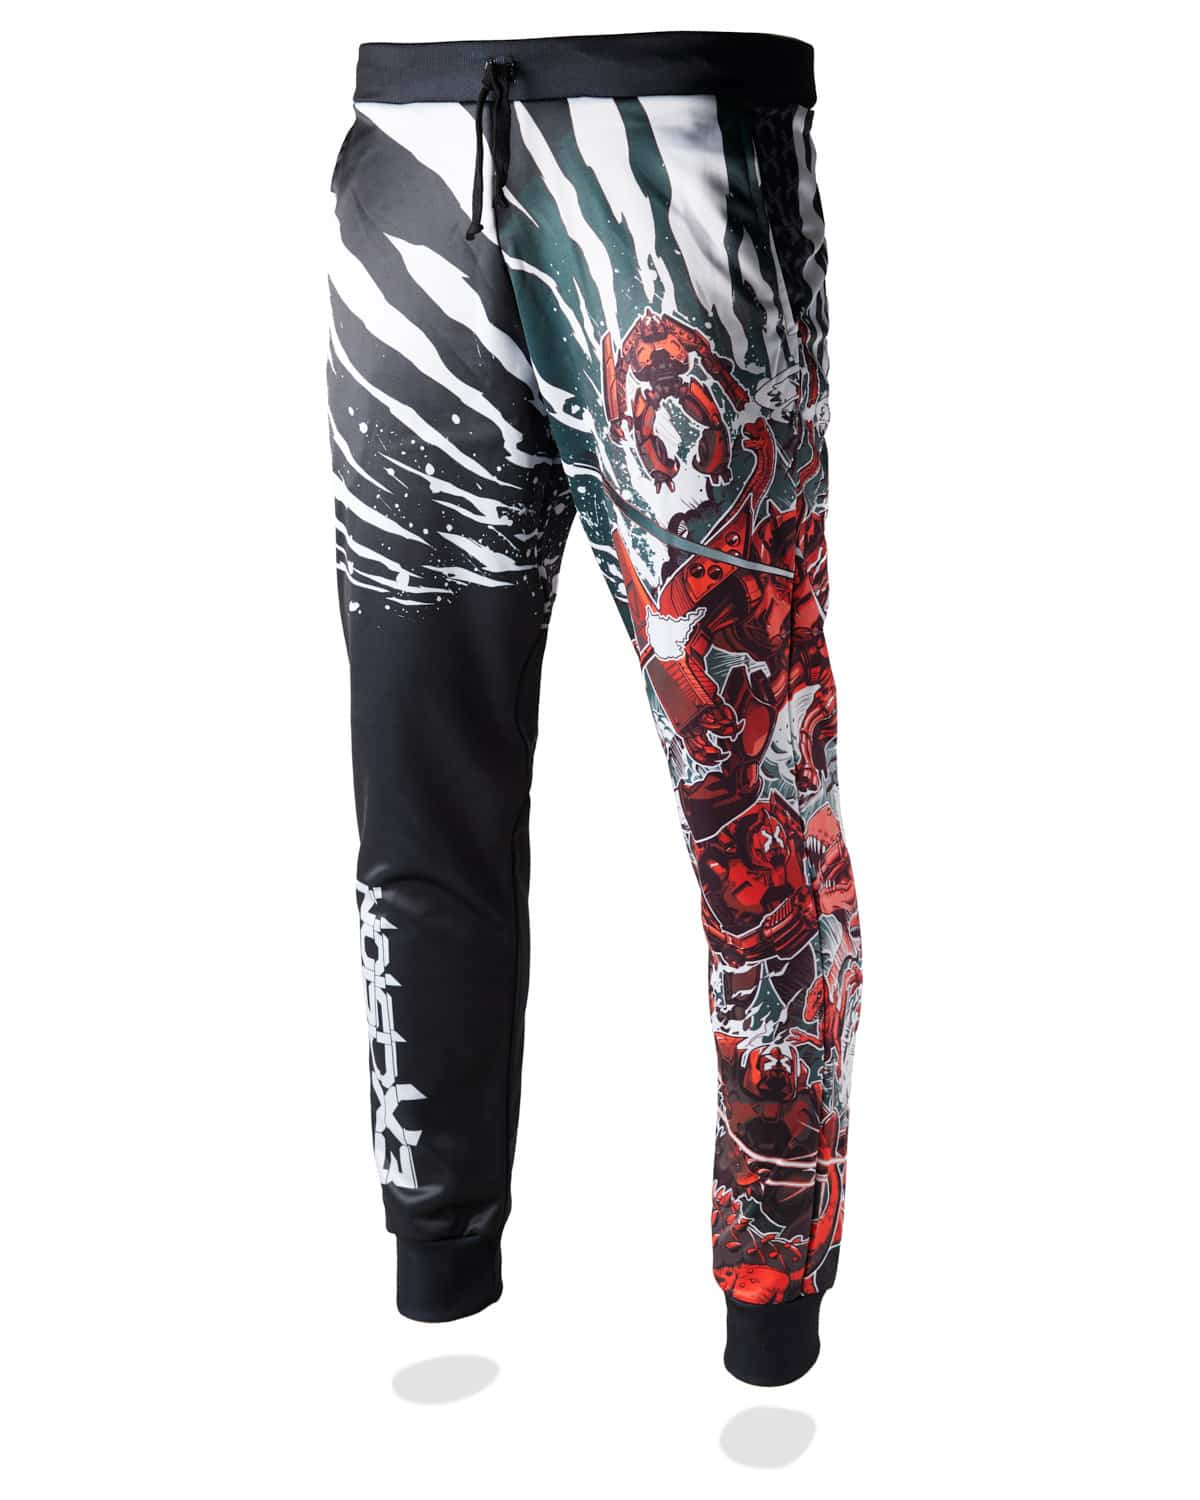 Excision 'Dino vs. Robot' Joggers - Red